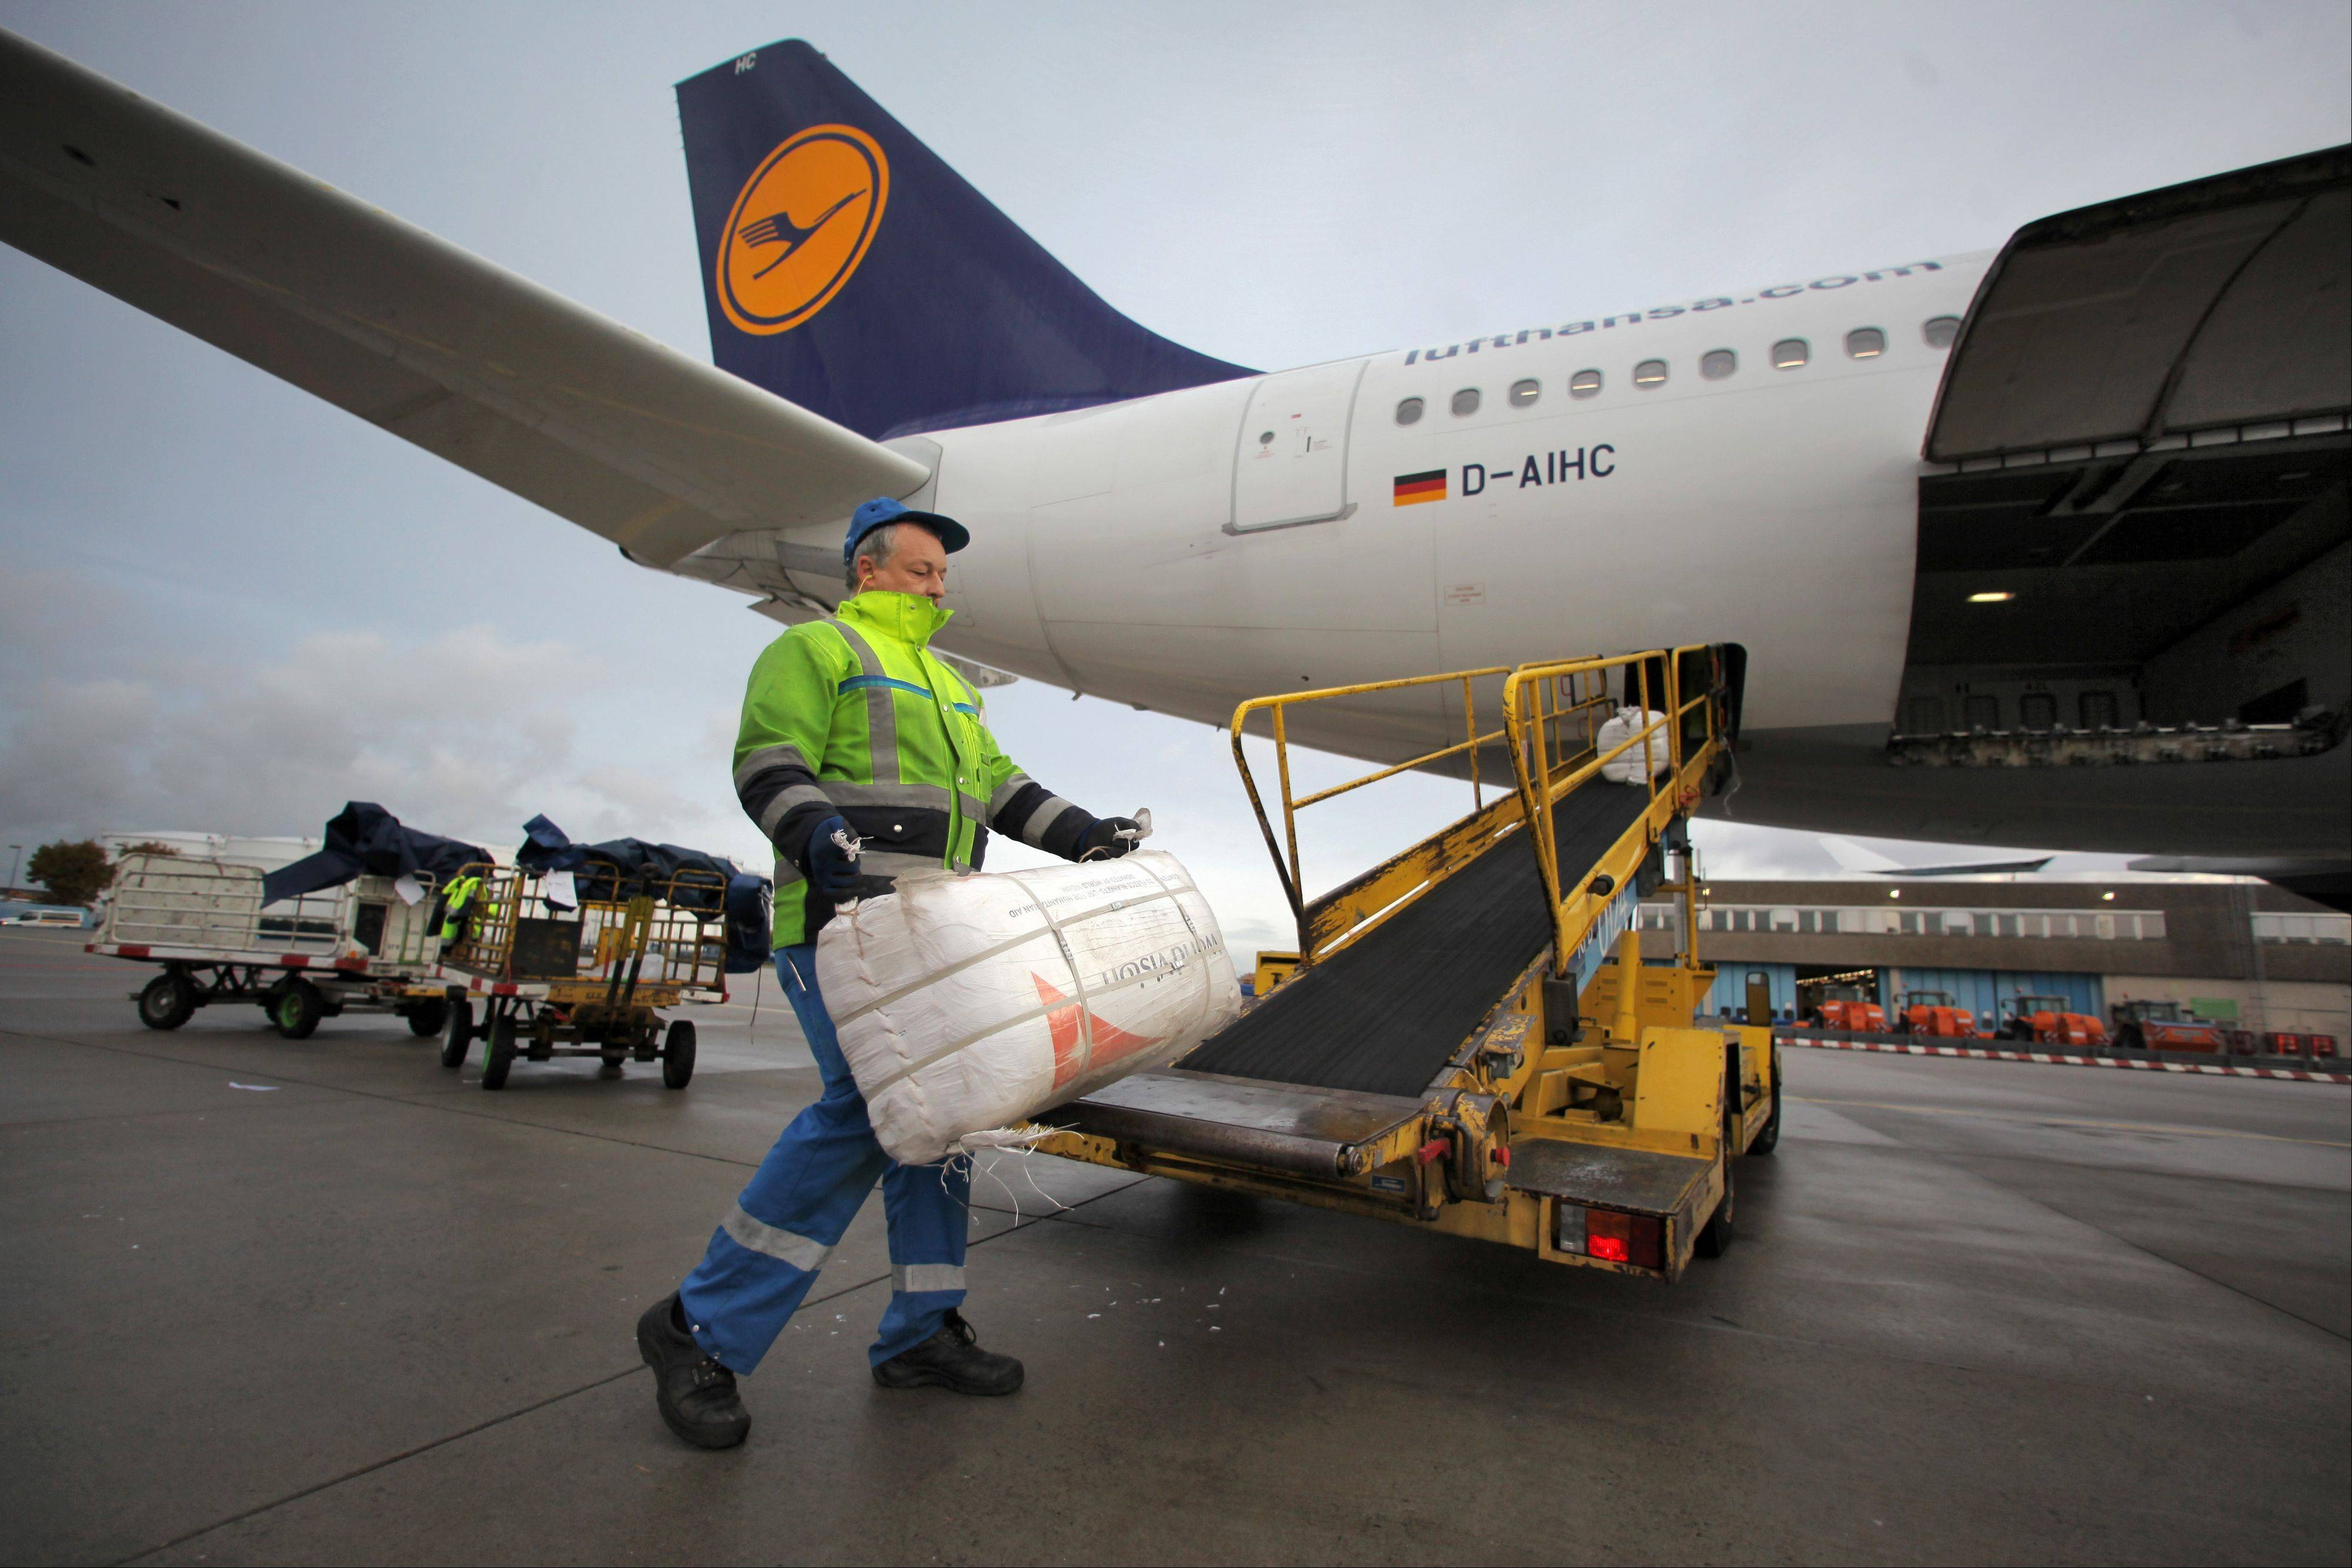 A worker loads humanitarian aid for the Philippines into a Lufthansa plane at Rhein-Main Airport in Frankfurt, central Germany, Sunday. Typhoon Haiyan, one of the strongest storms on record, slammed into six central Philippine islands on Friday leaving a wide swath of destruction and scores of people dead.